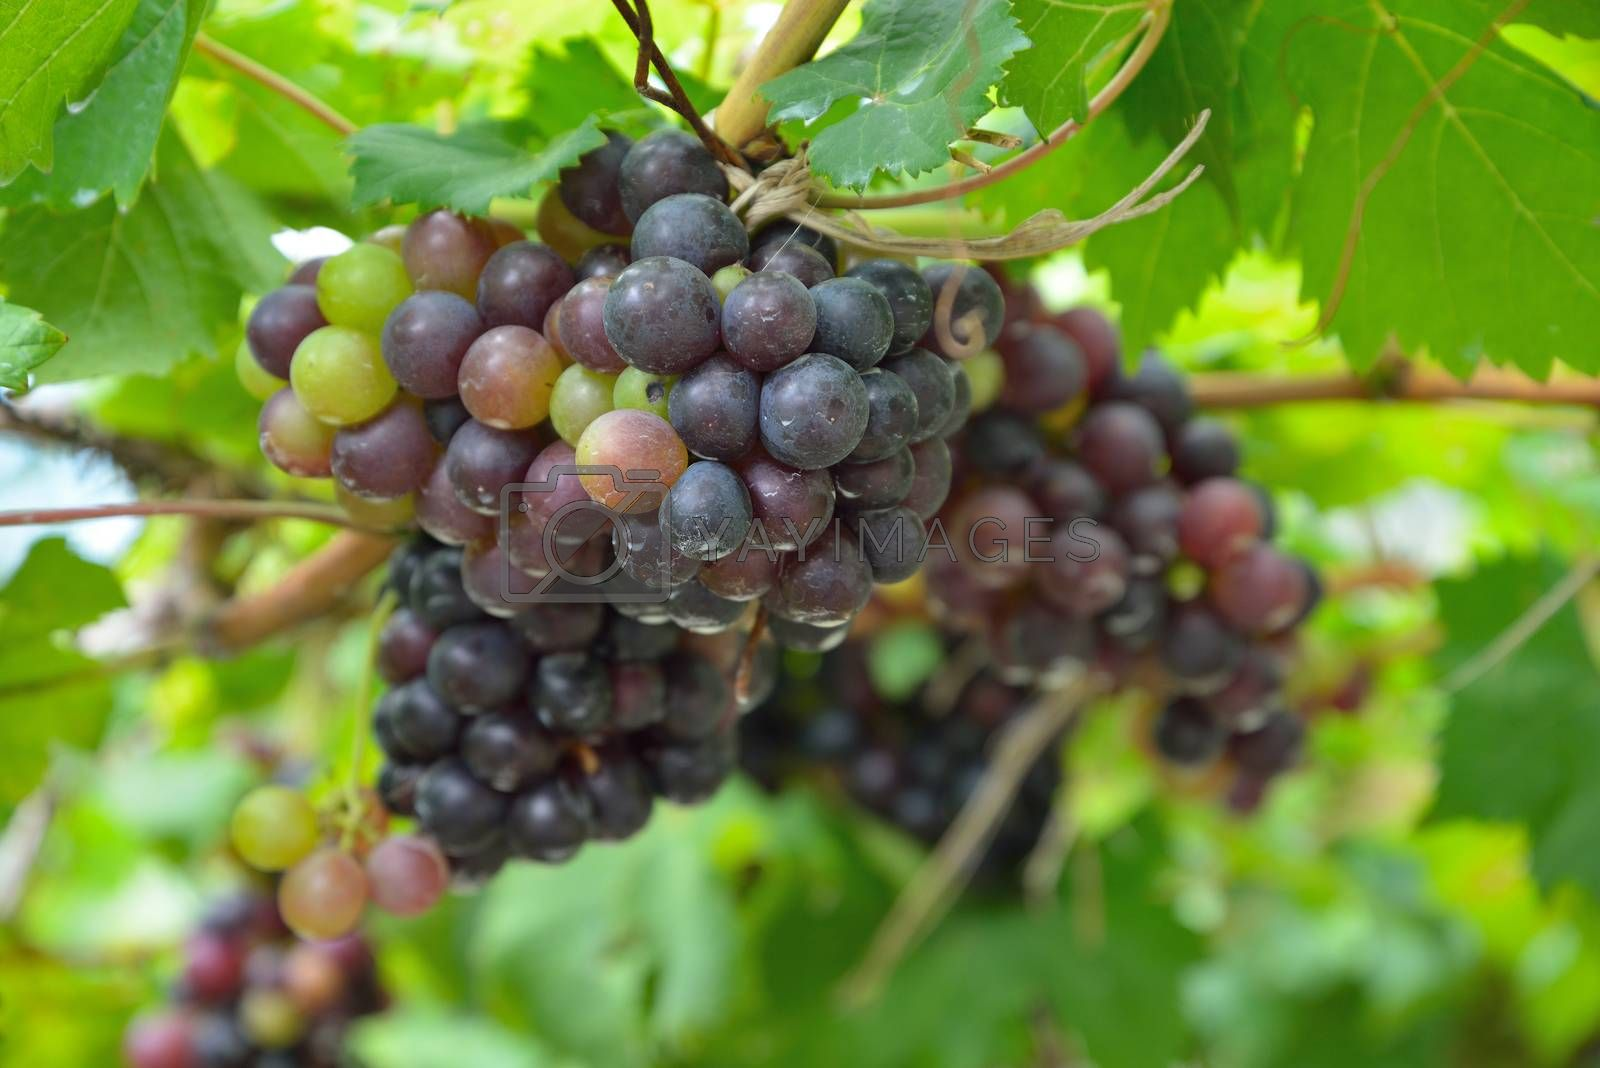 Grapes on the Vine by jakgree